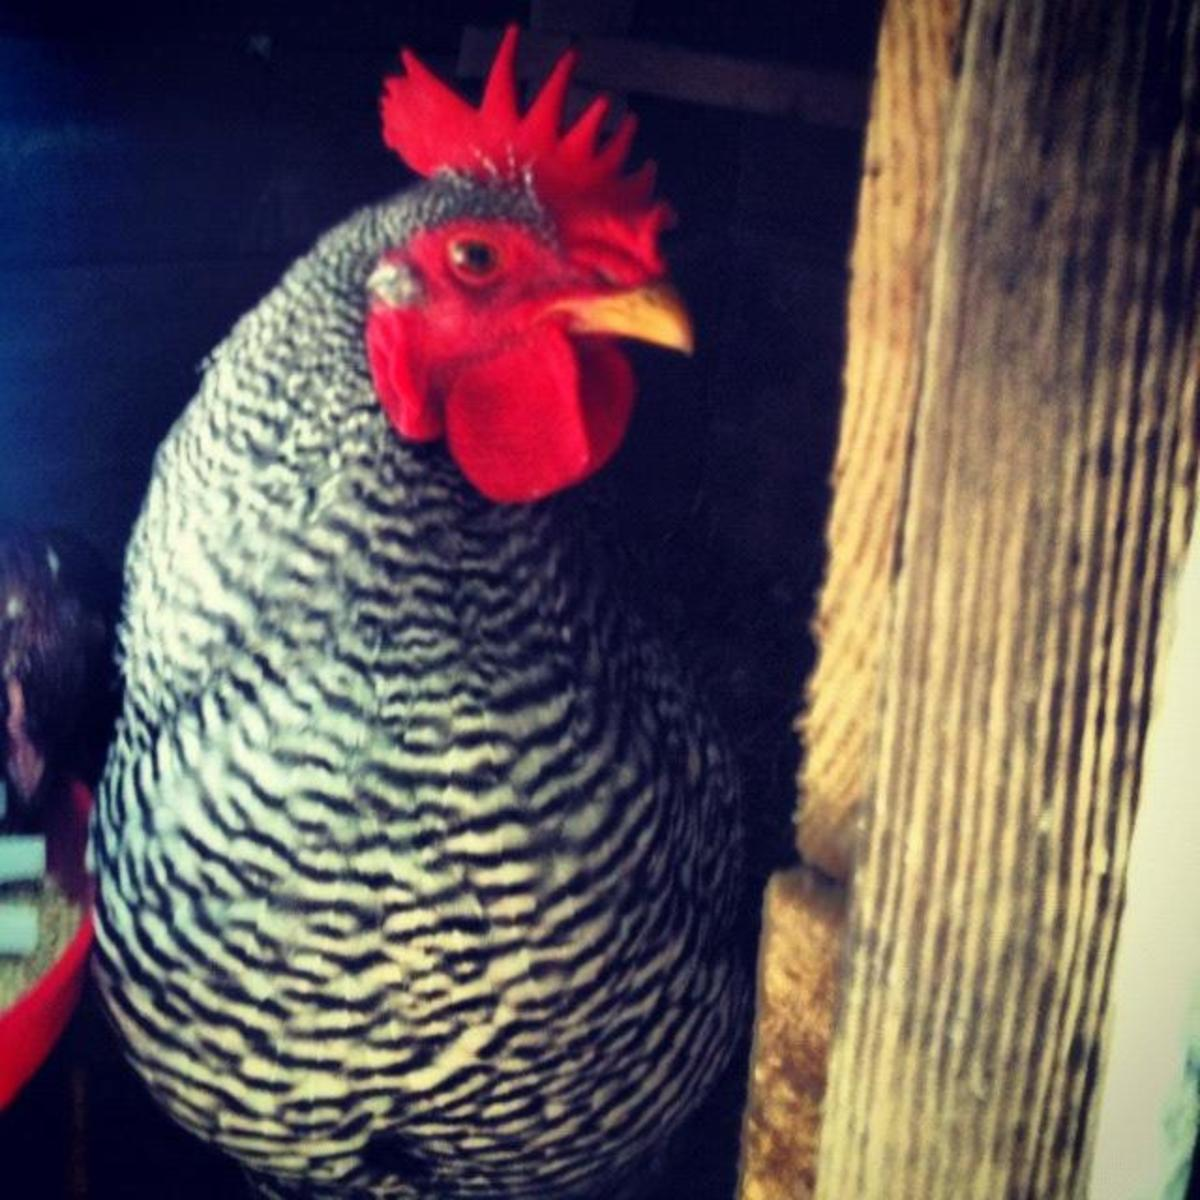 Our Barred Rock rooster, Zeus or Zeusie as I like to call him!